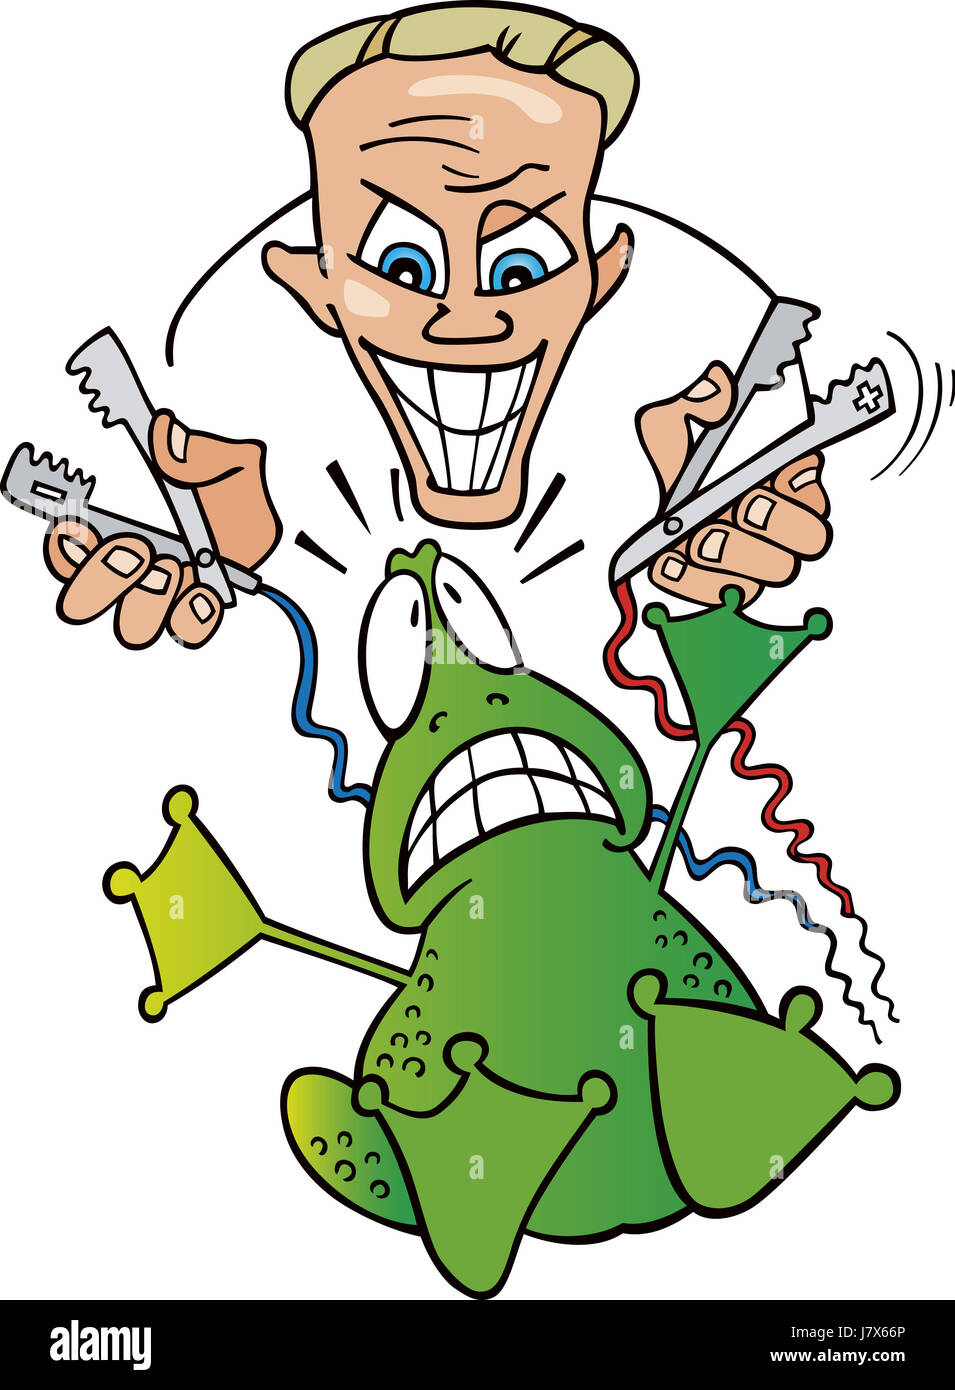 experiment research illustration frog laboratory cartoon scientist comics art Stock Photo